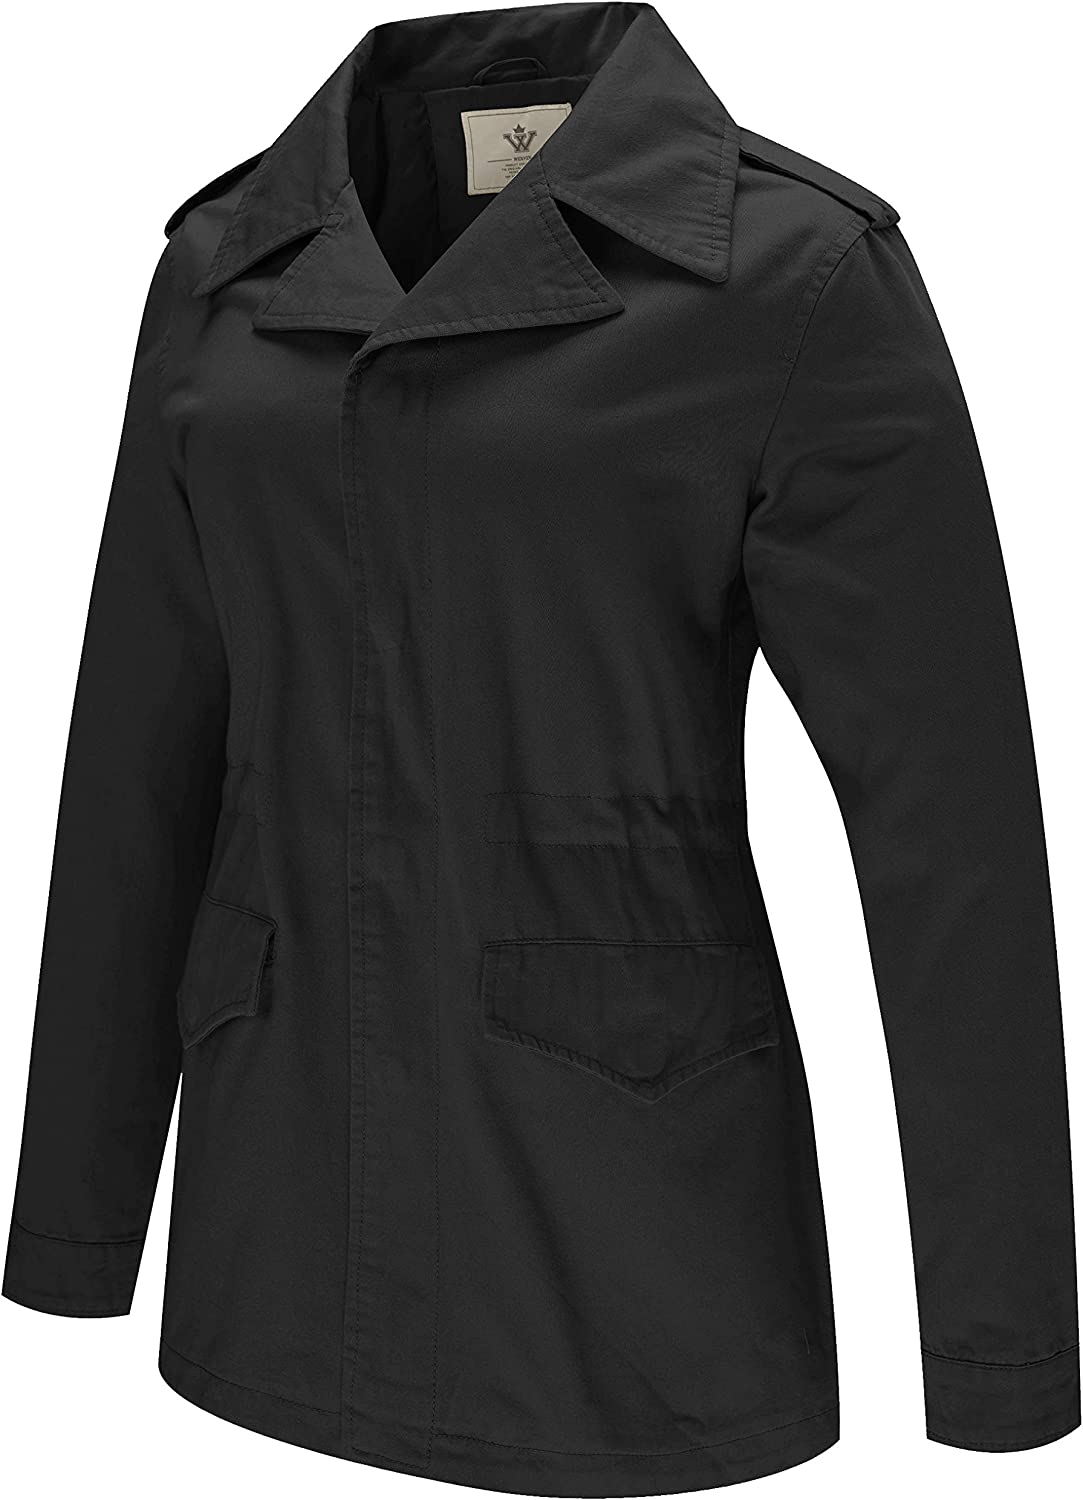 WenVen Womens Spring Military/Casual Cotton Anorak Jacket with Drawstring